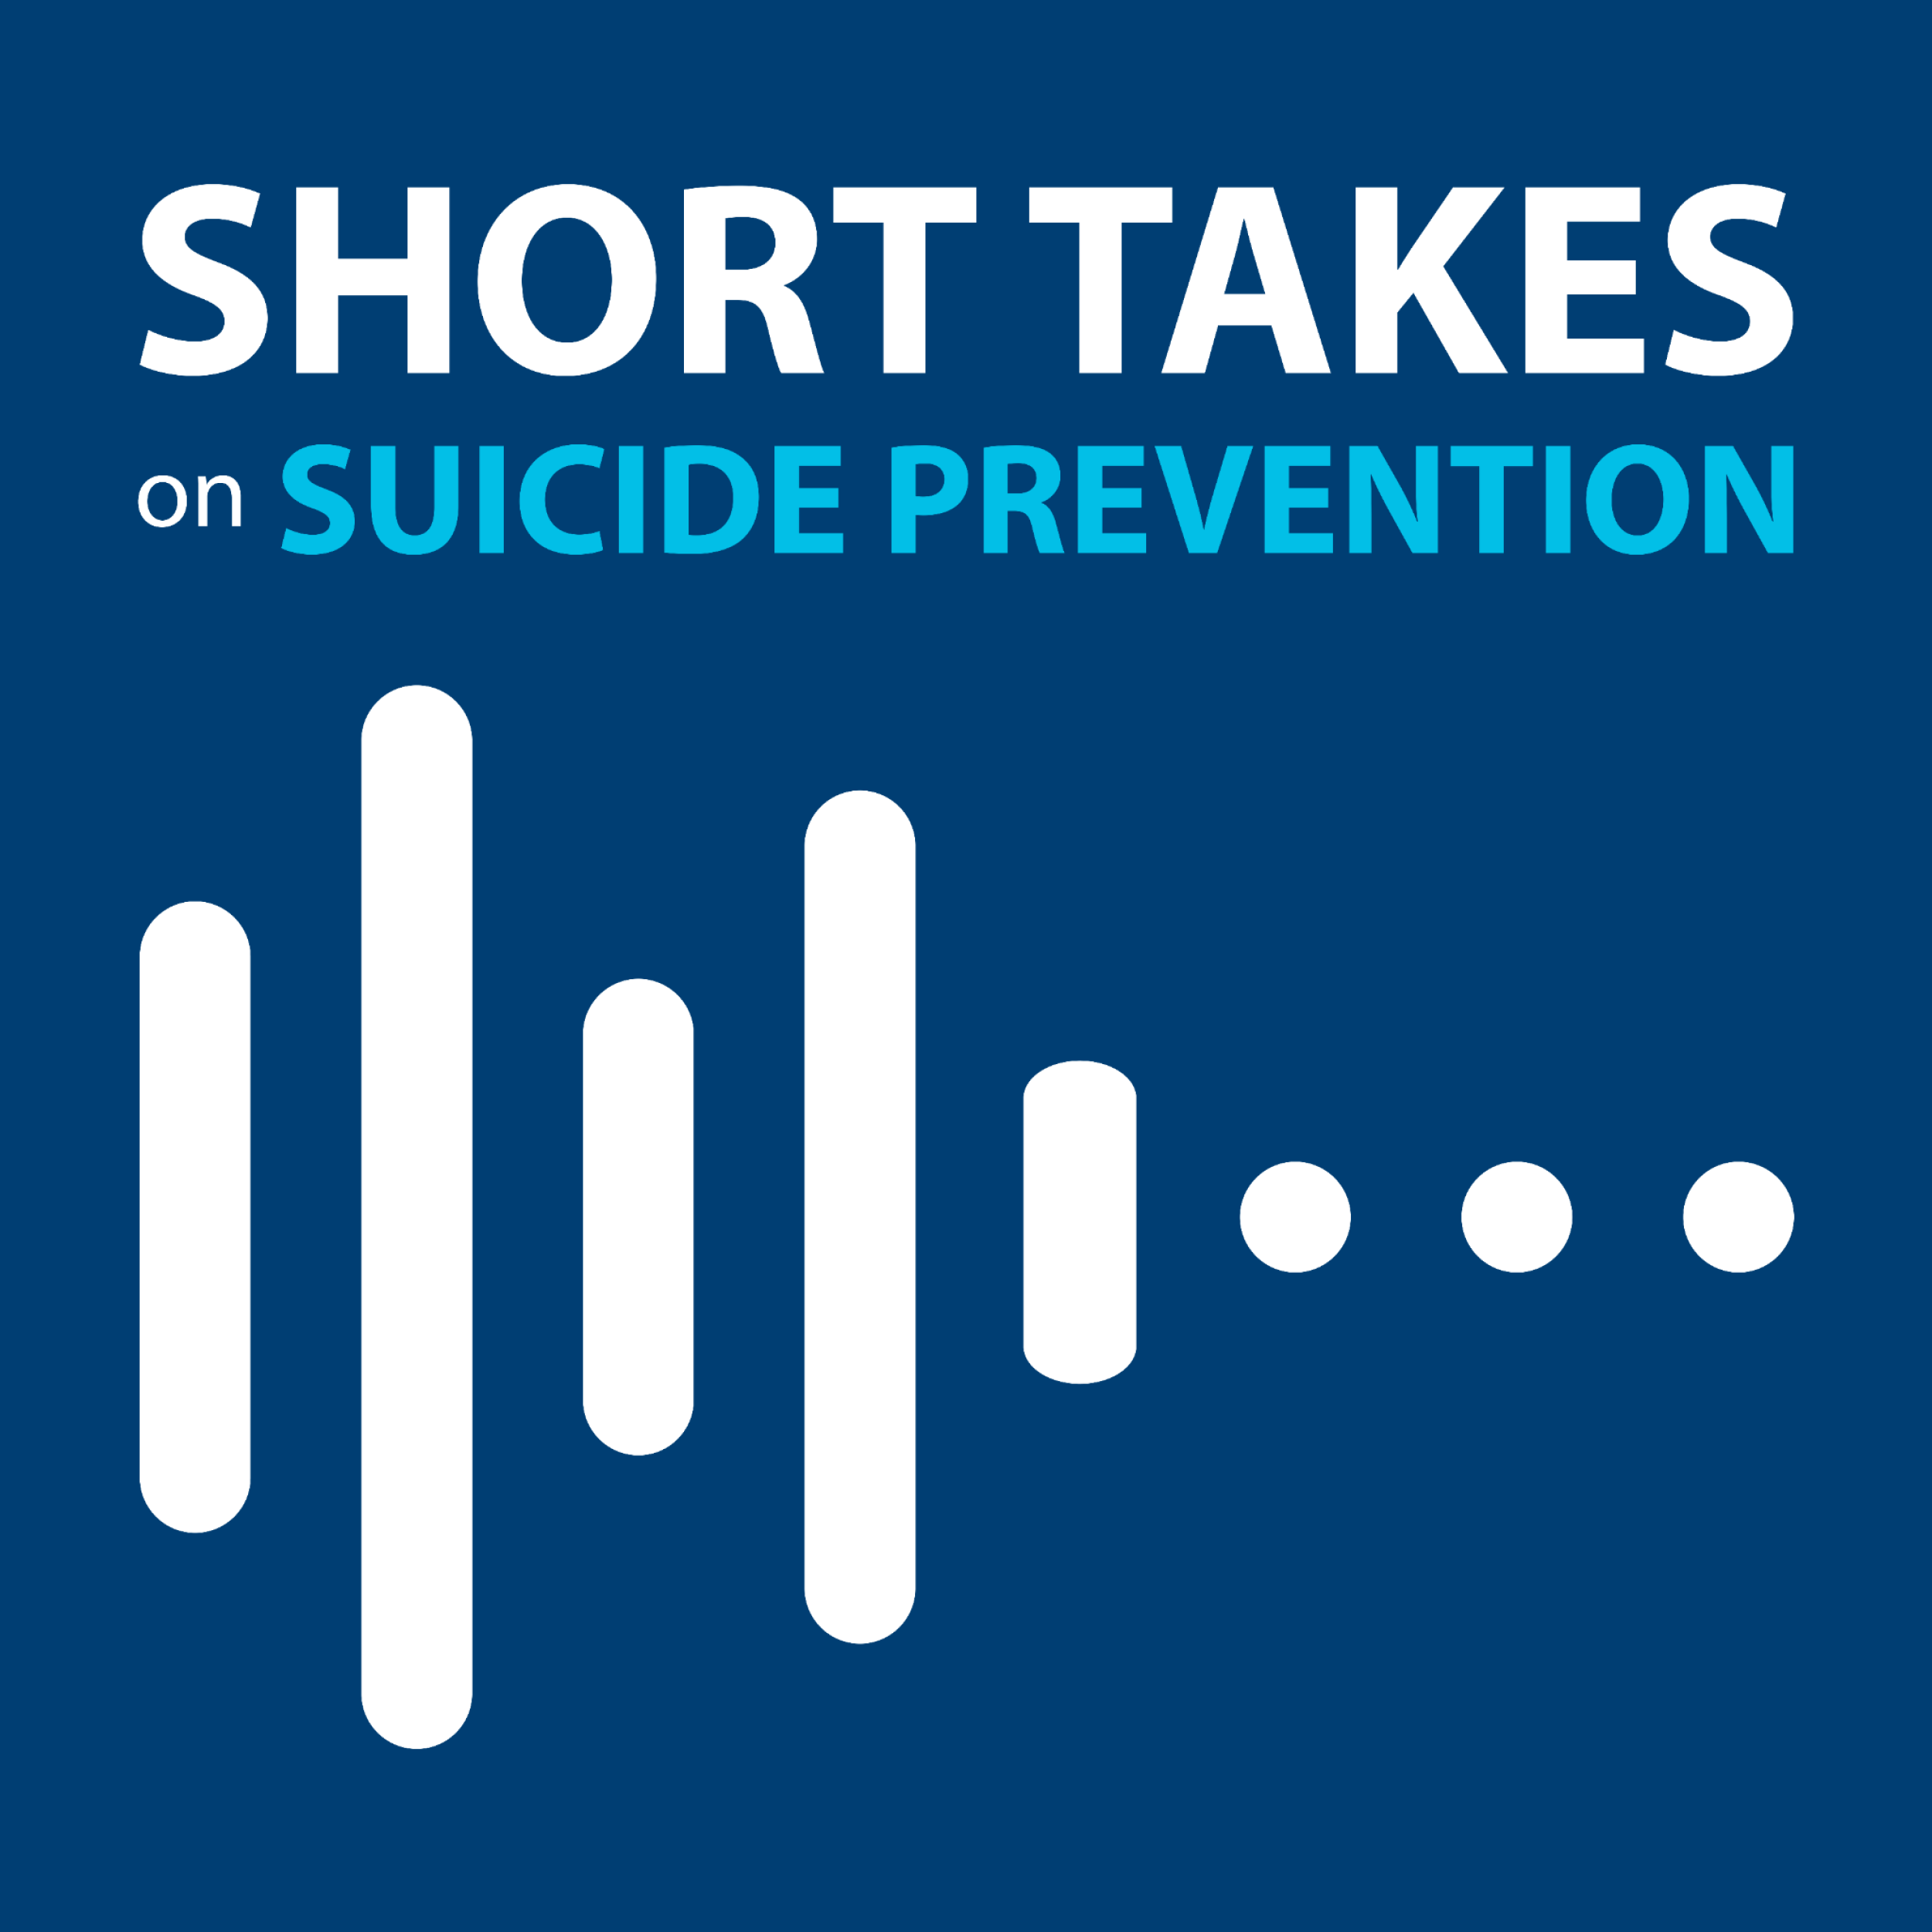 Short Takes on Suicide Prevention